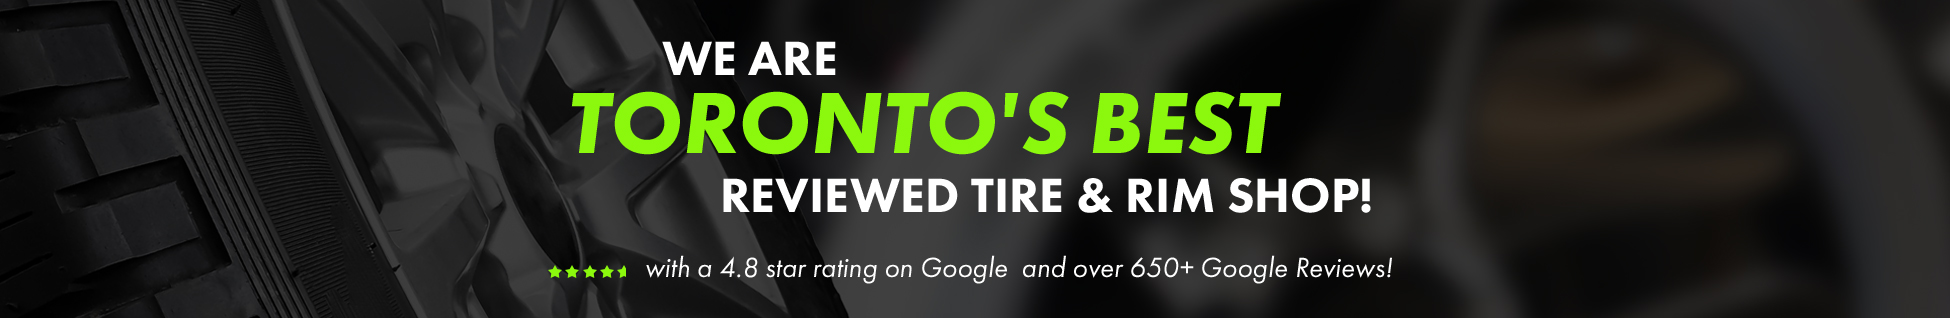 We are Toronto's Best Reviewed Tire & Wheel Shop!